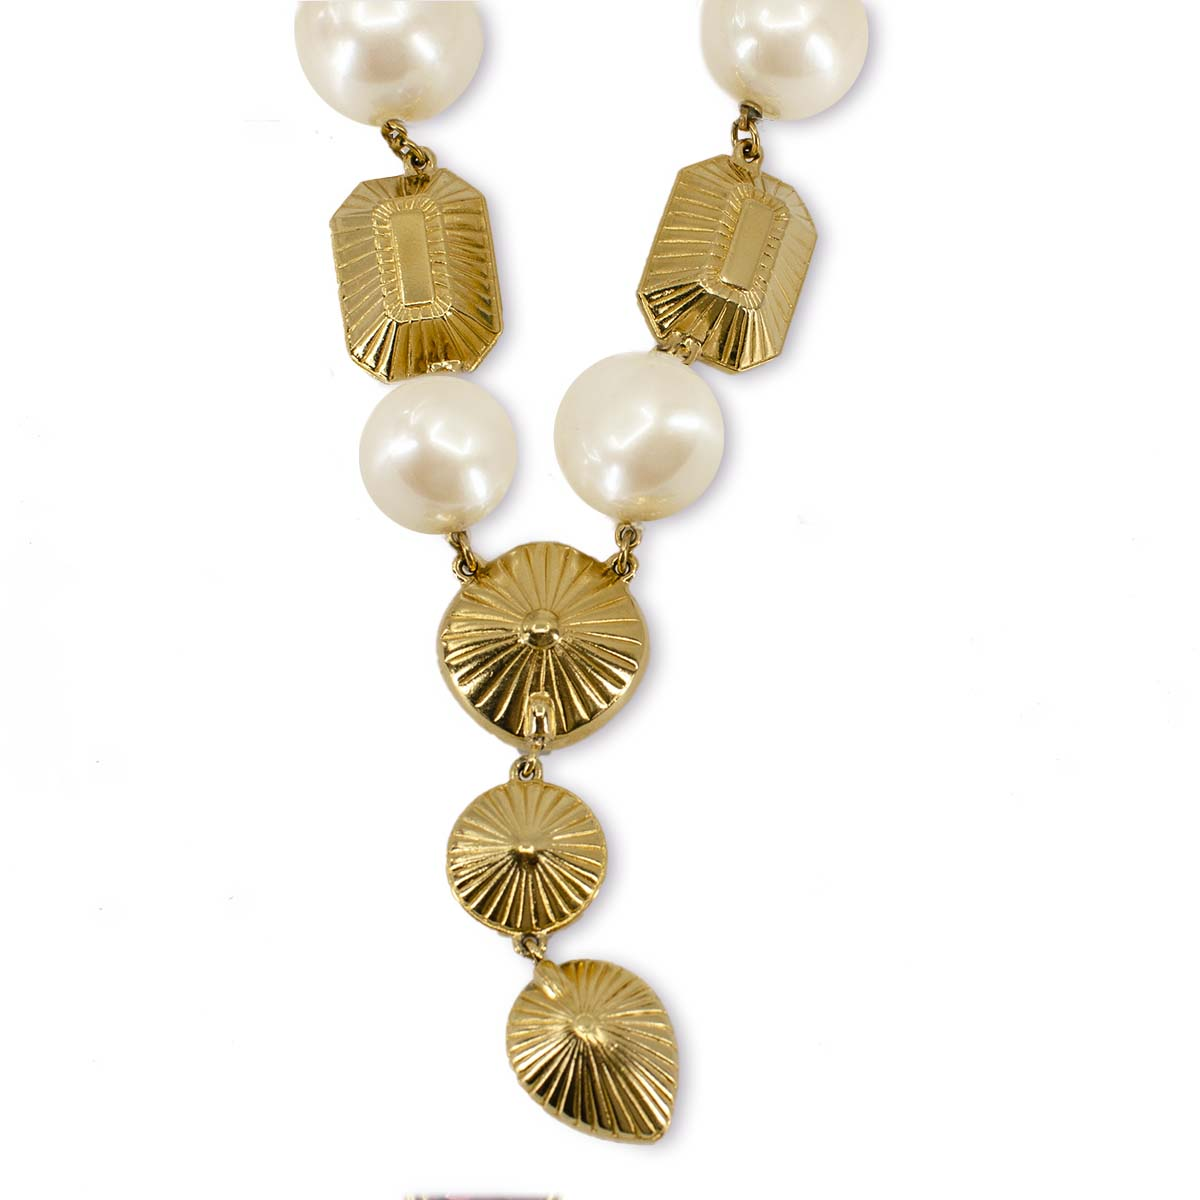 YSL pearl necklace, large pearls